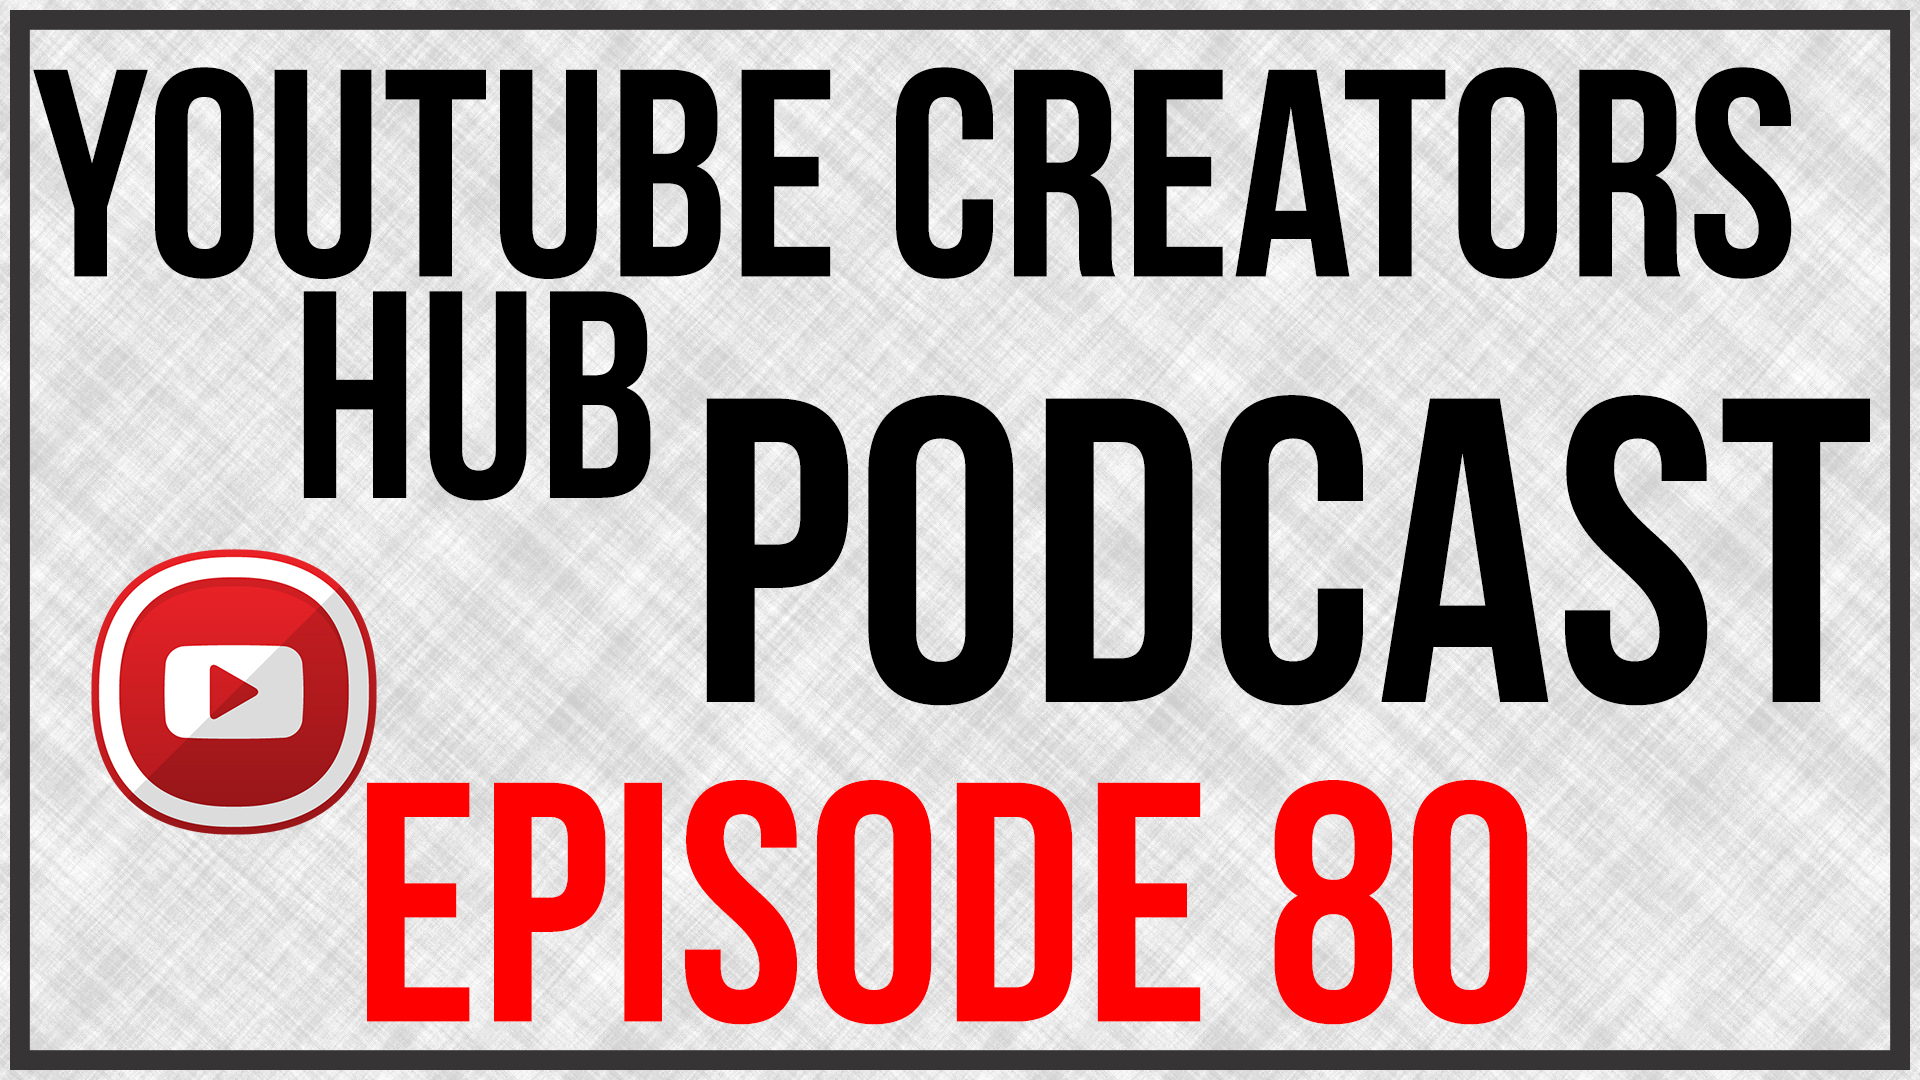 YouTube Creators Hub Podcast Episode 80